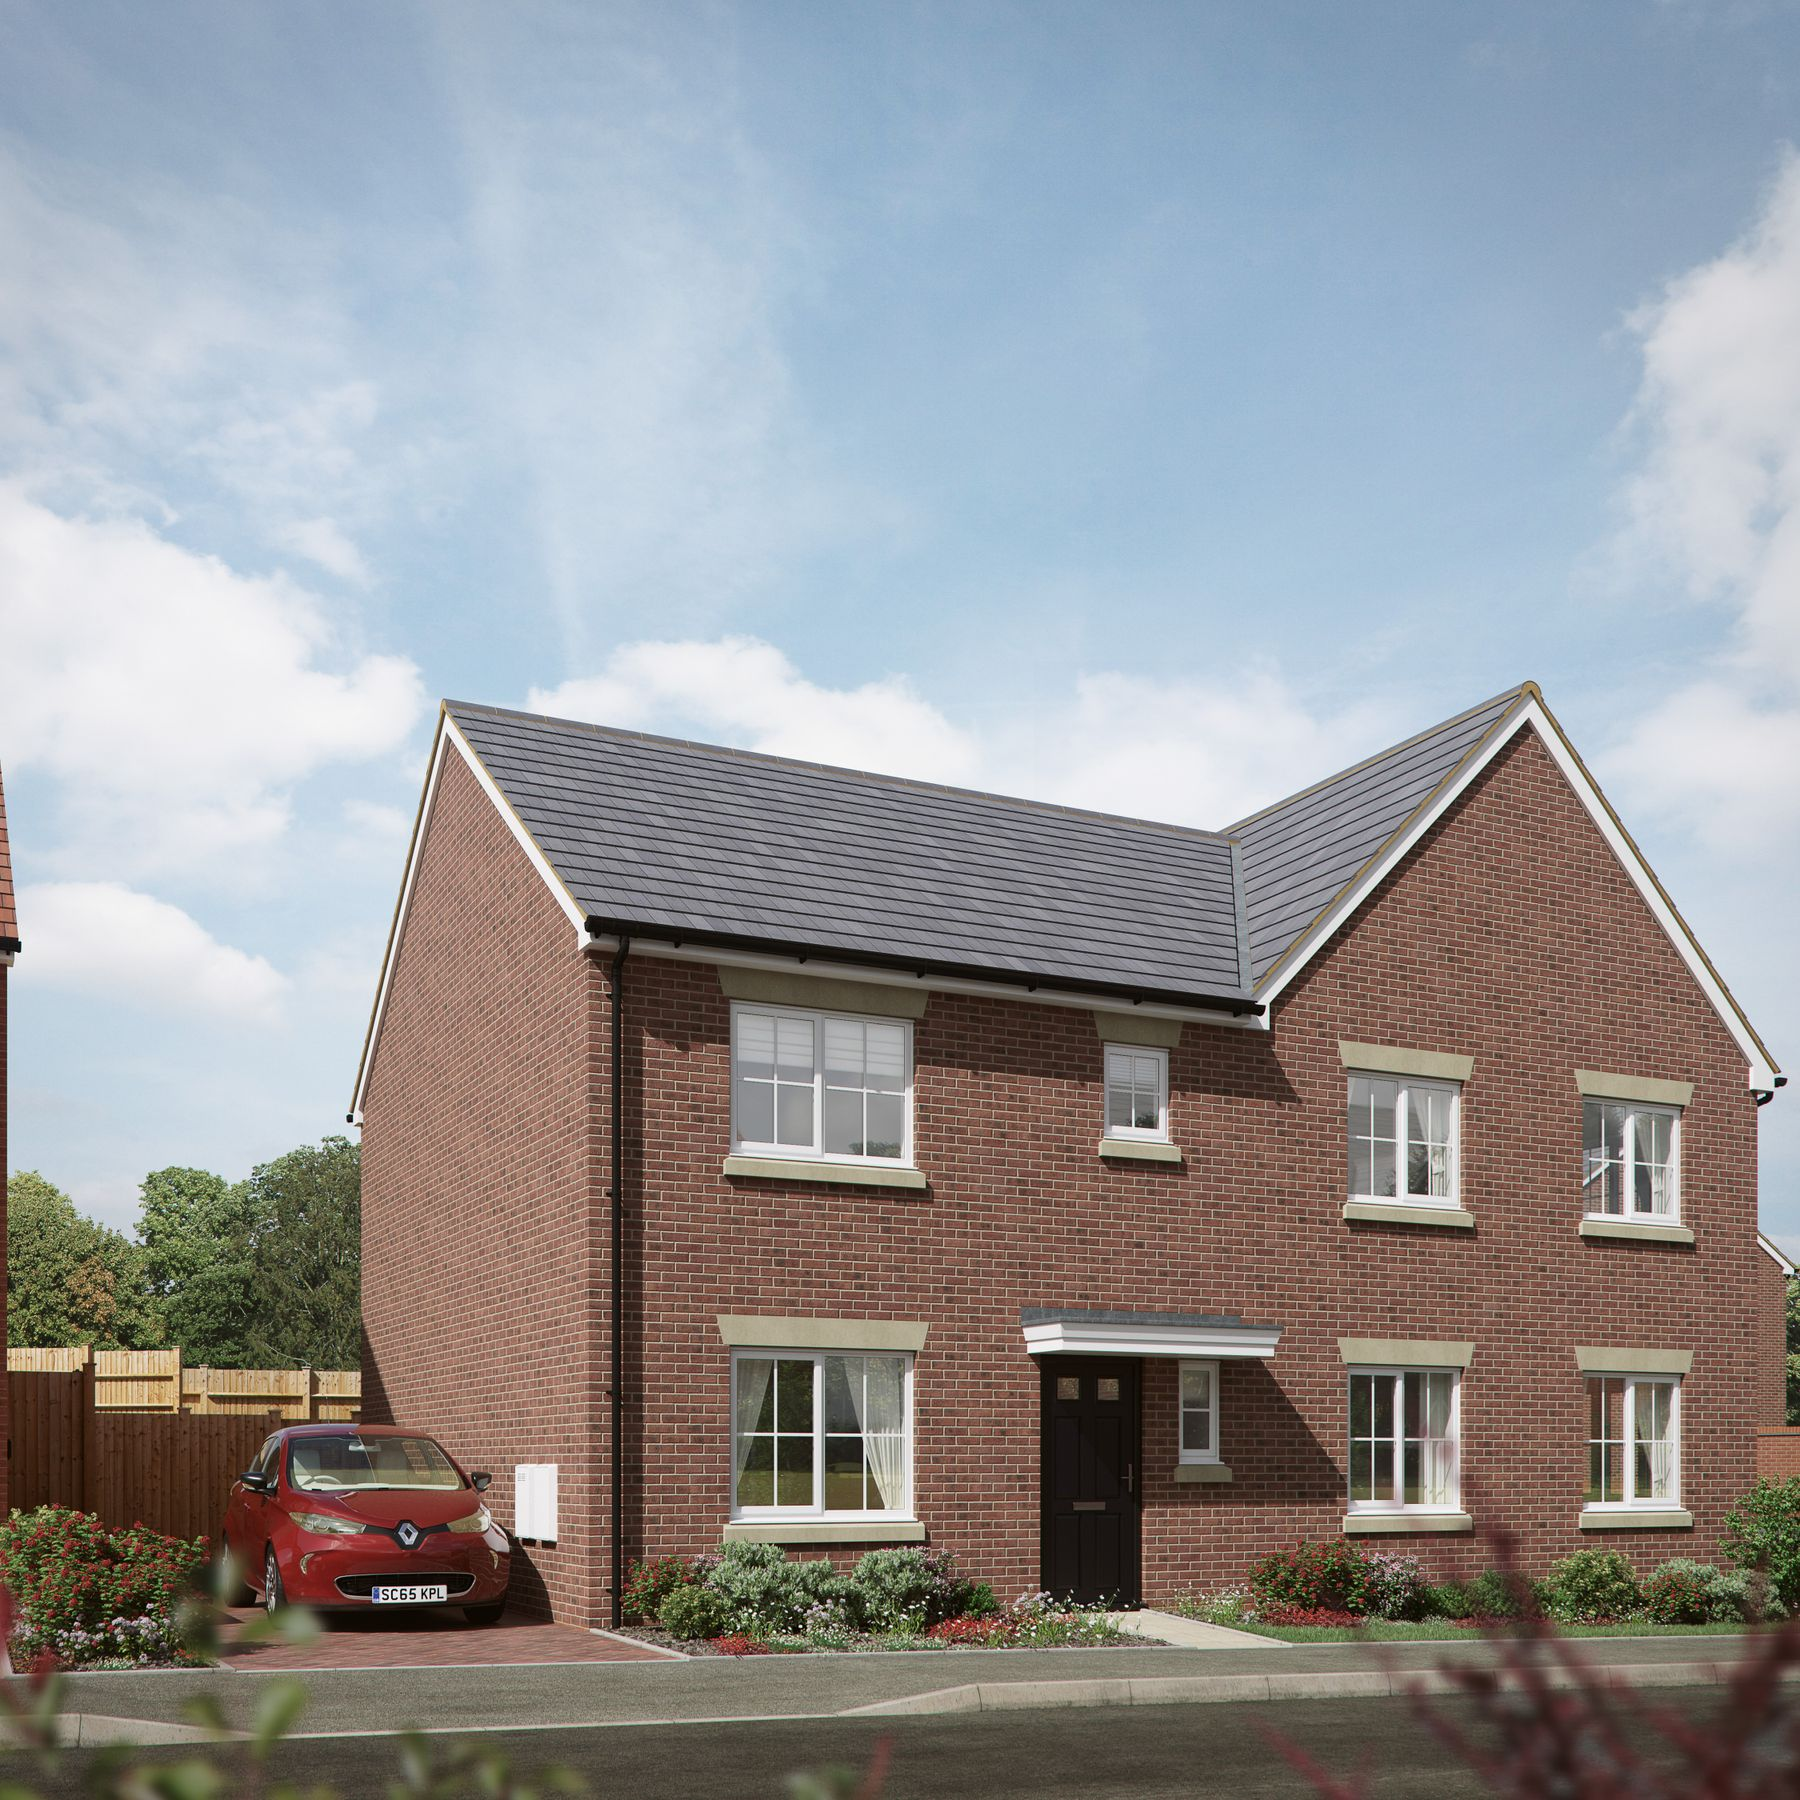 Property photo 1 of 8. The Sandpiper House Type CGI